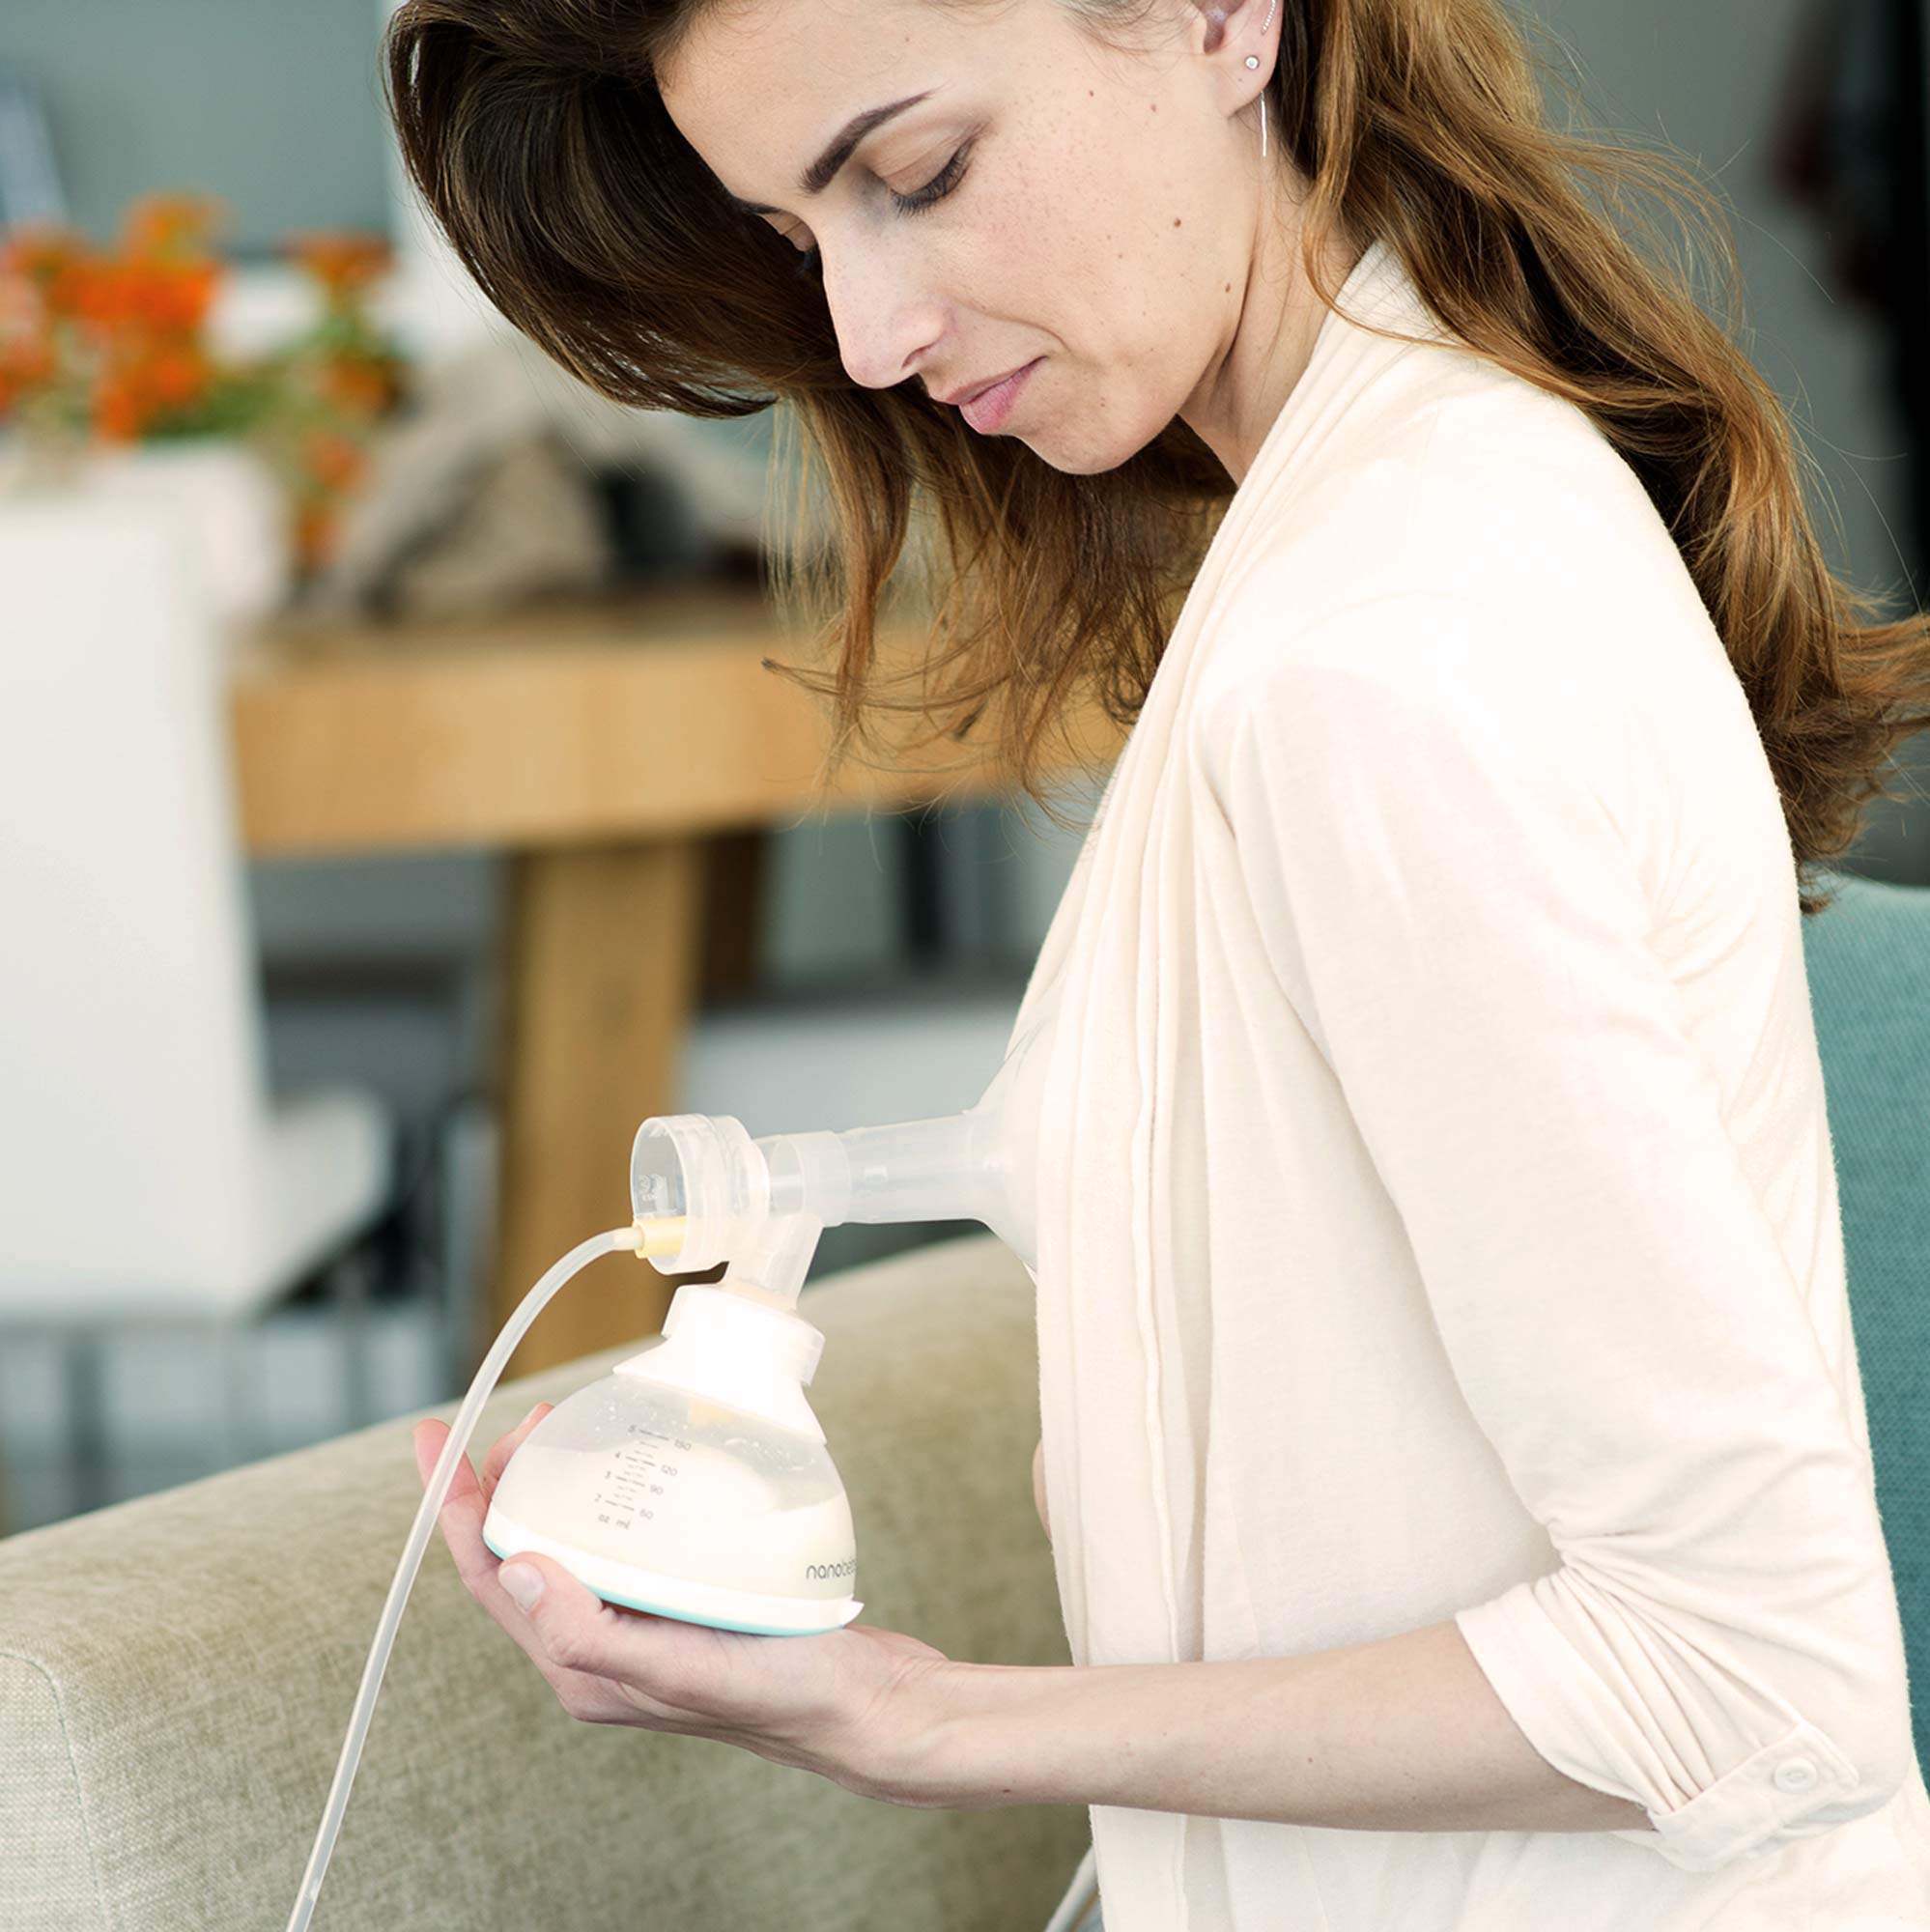 nanobébé Breast Pump Adapters